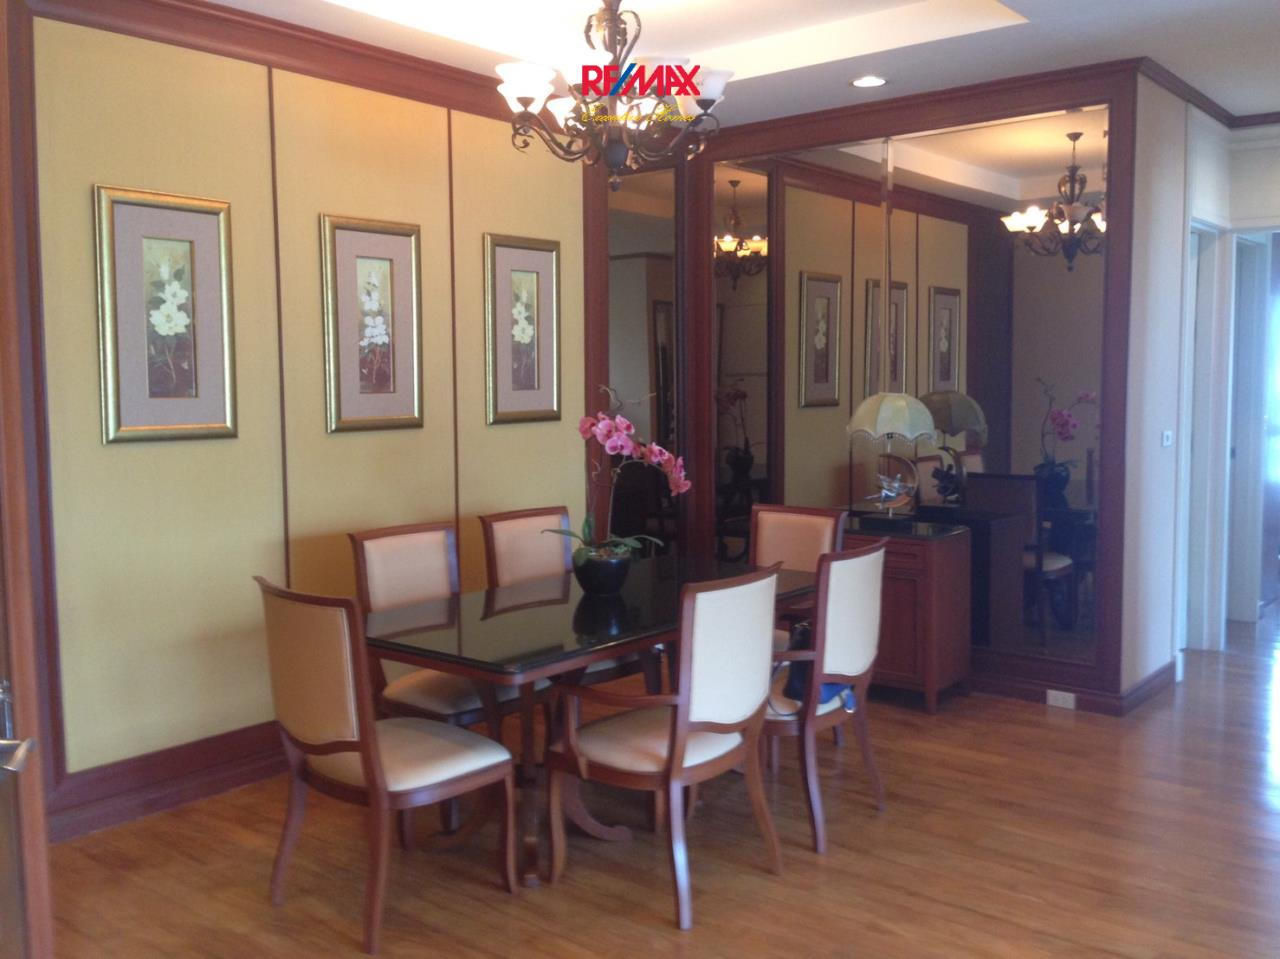 RE/MAX Executive Homes Agency's Spacious 2 Bedroom for Rent The Bangkok 43 2